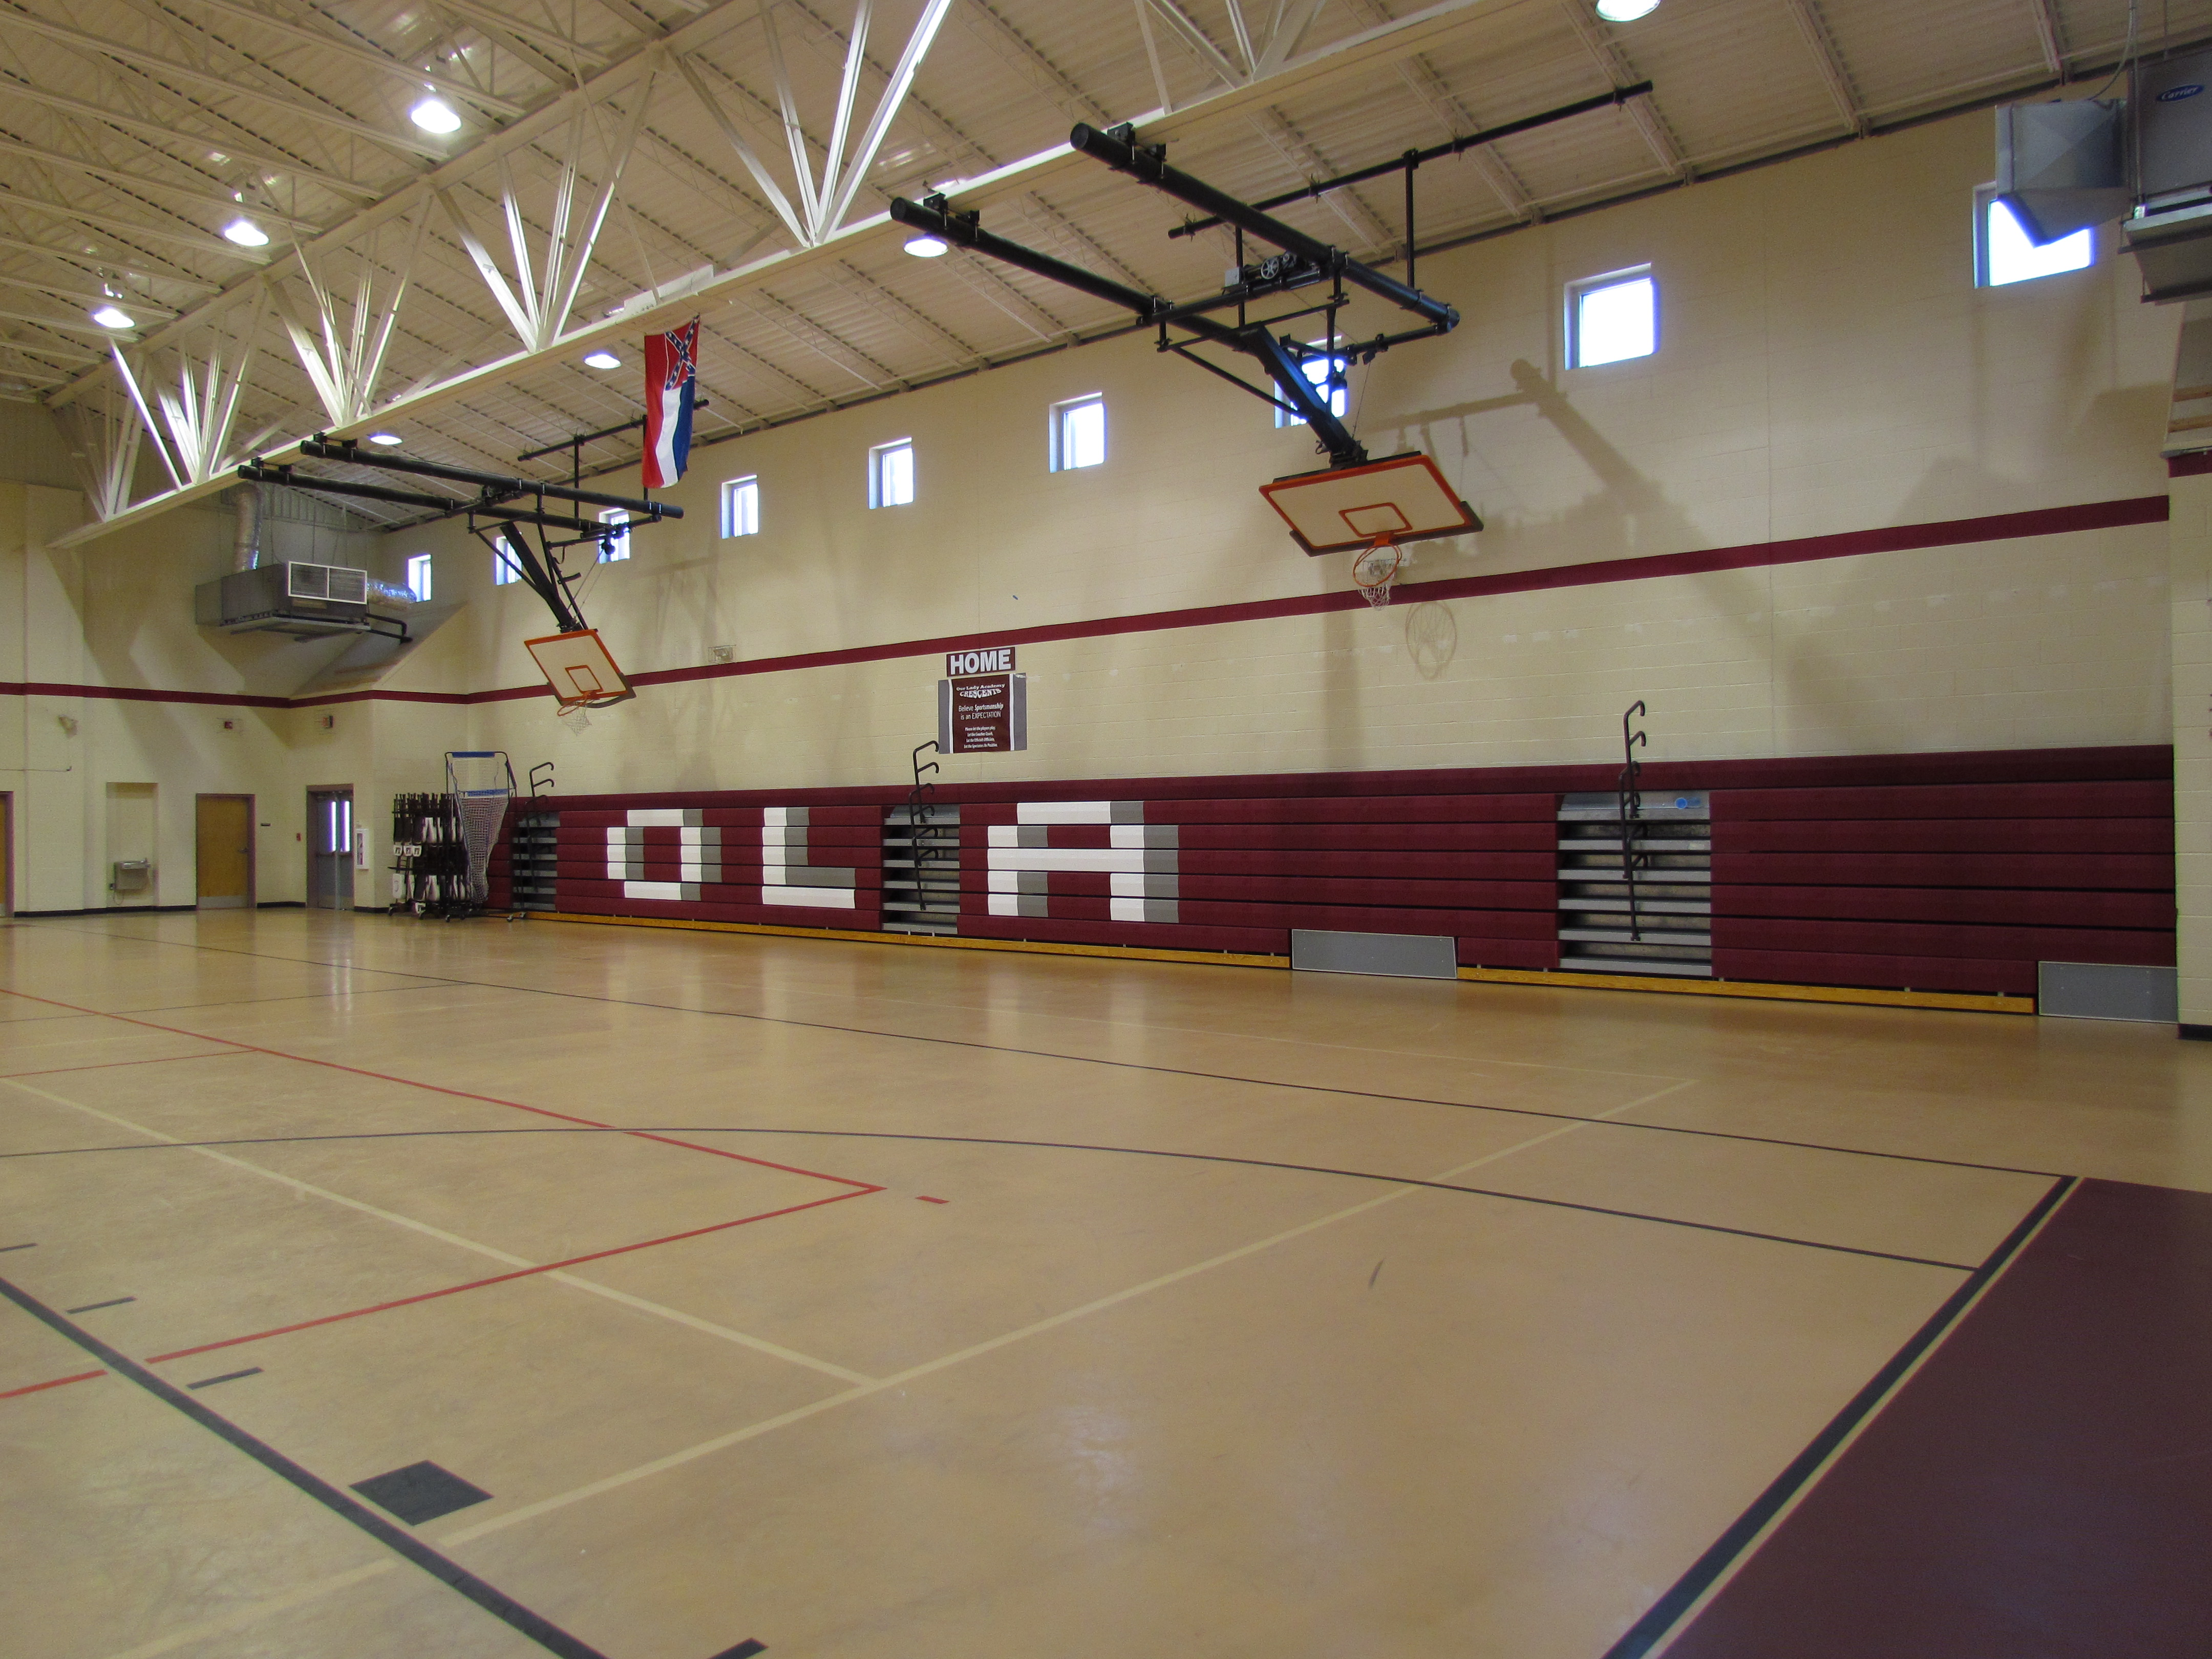 Our Lady Academy (OLA) Gymnasium